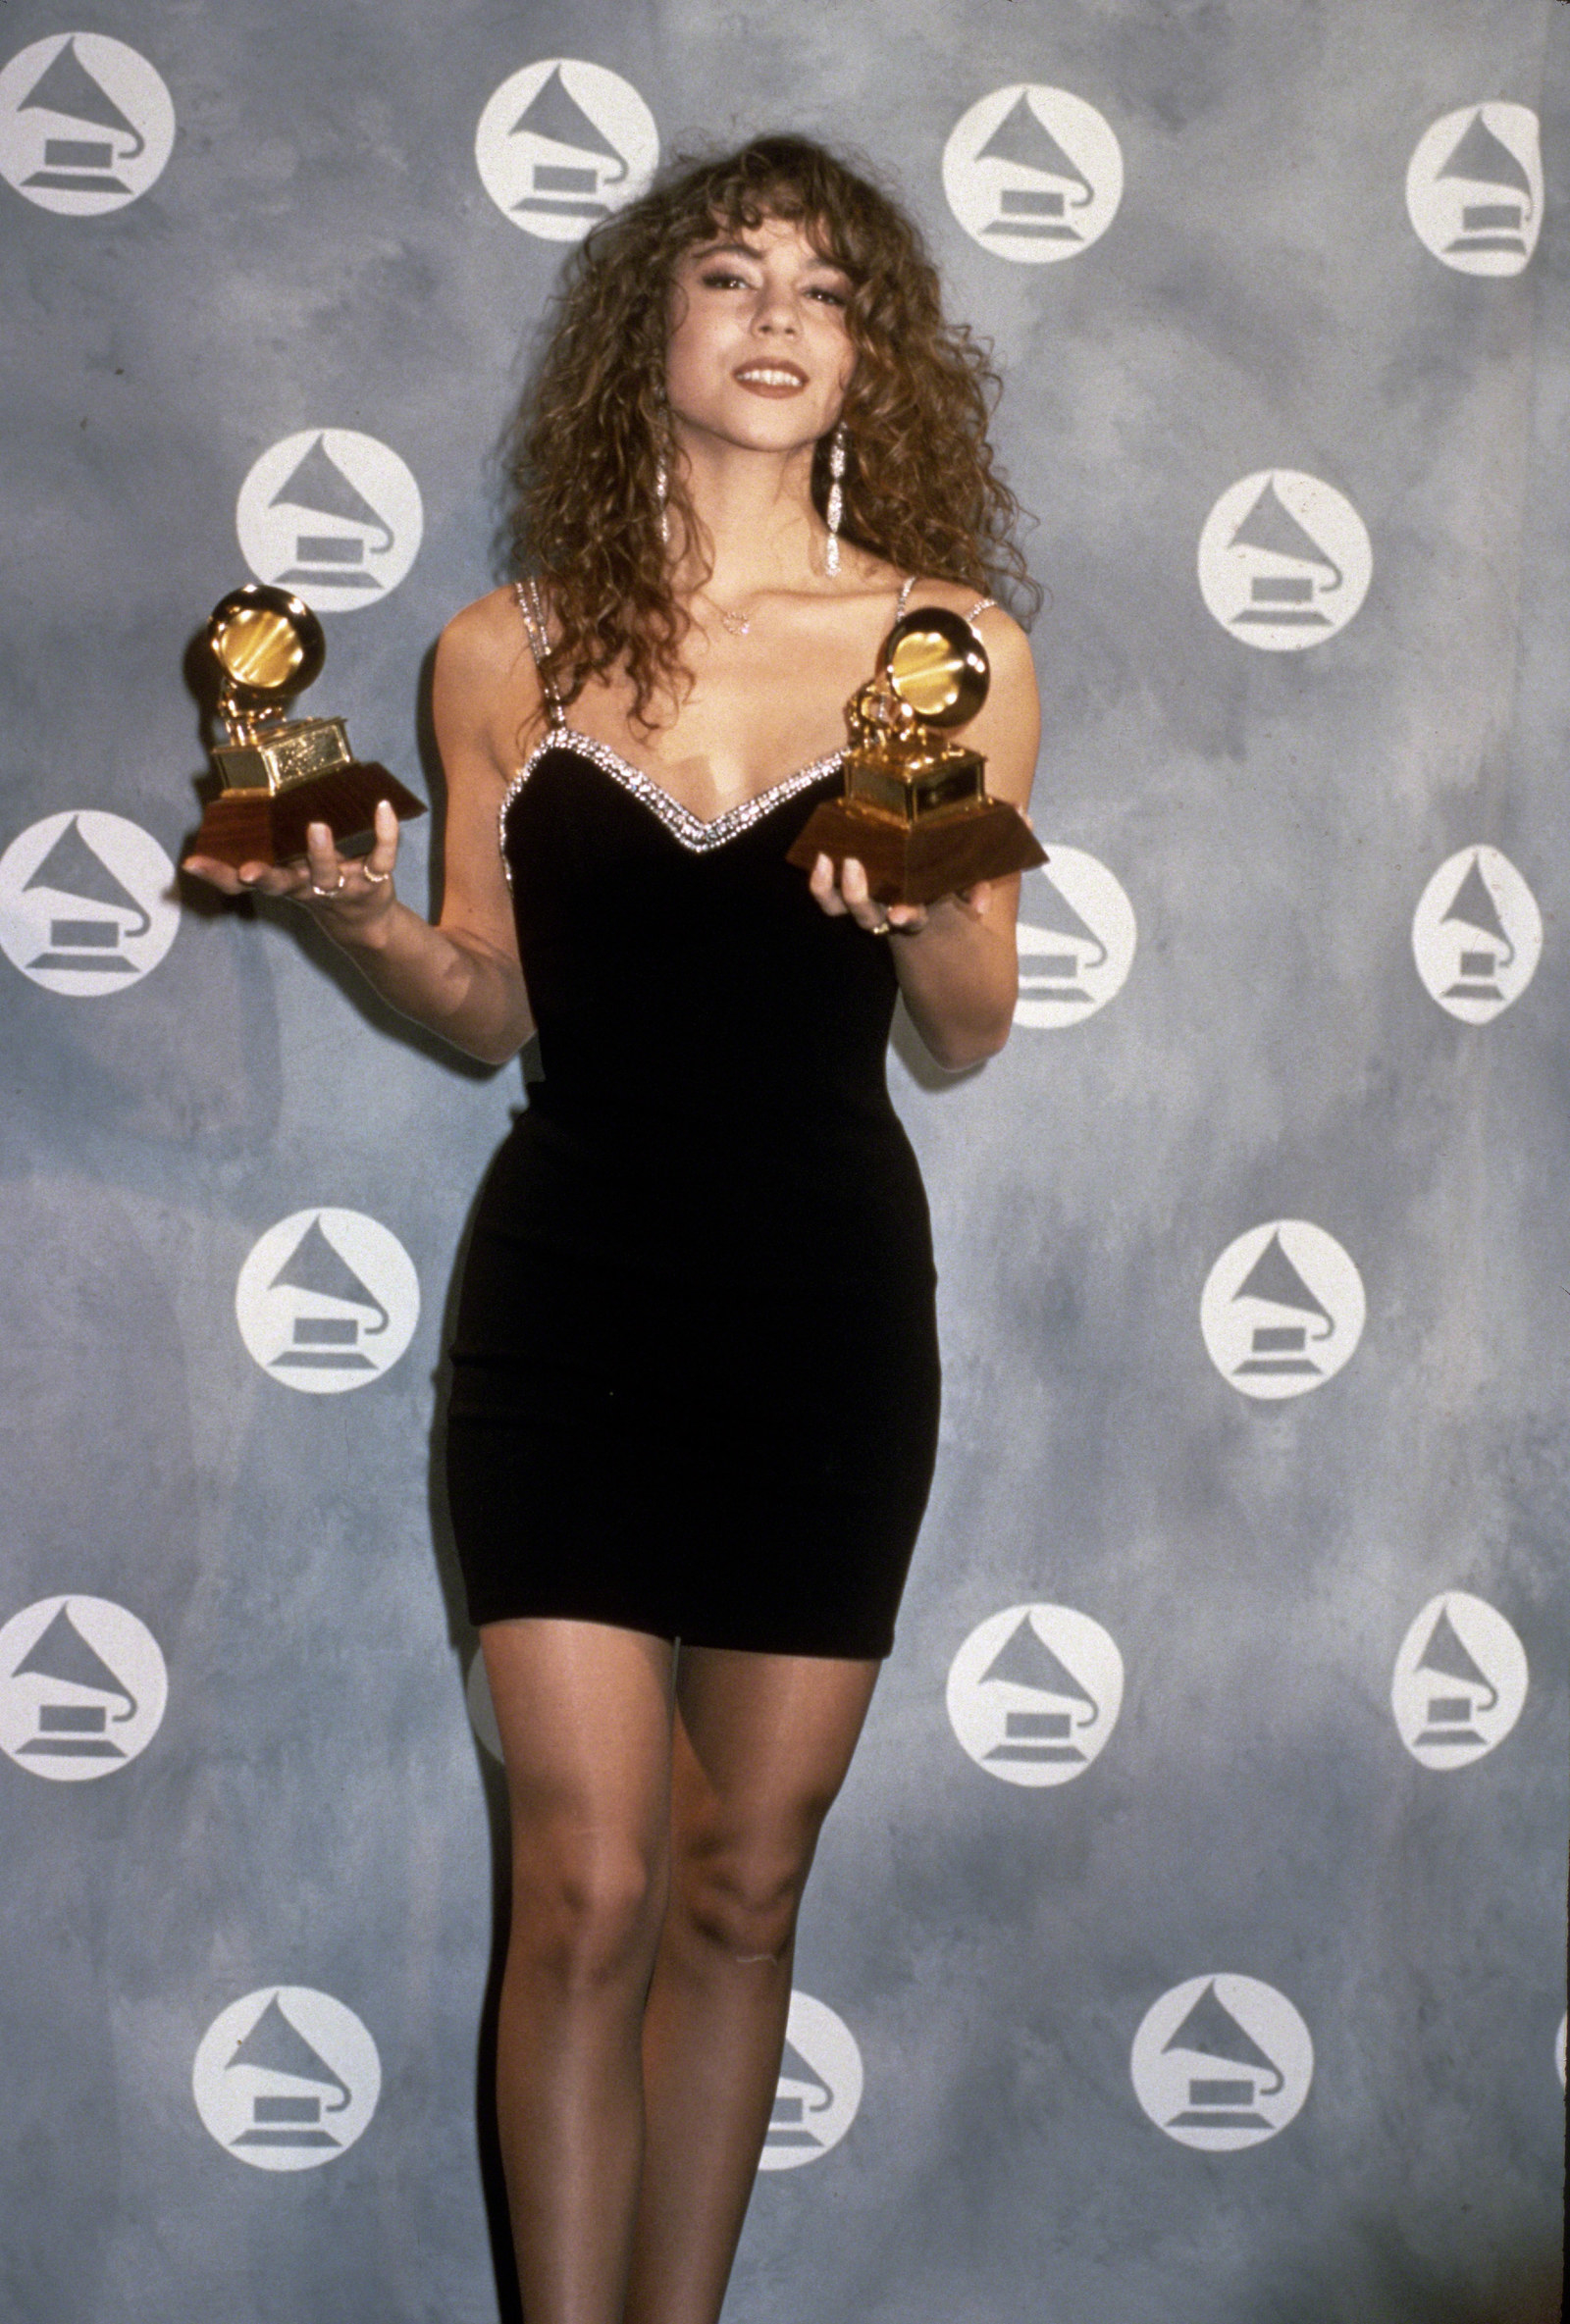 The non-winners were The Black Crowes, The Kentucky Headhunters, Lisa Stansfield and Wilson Phillips.